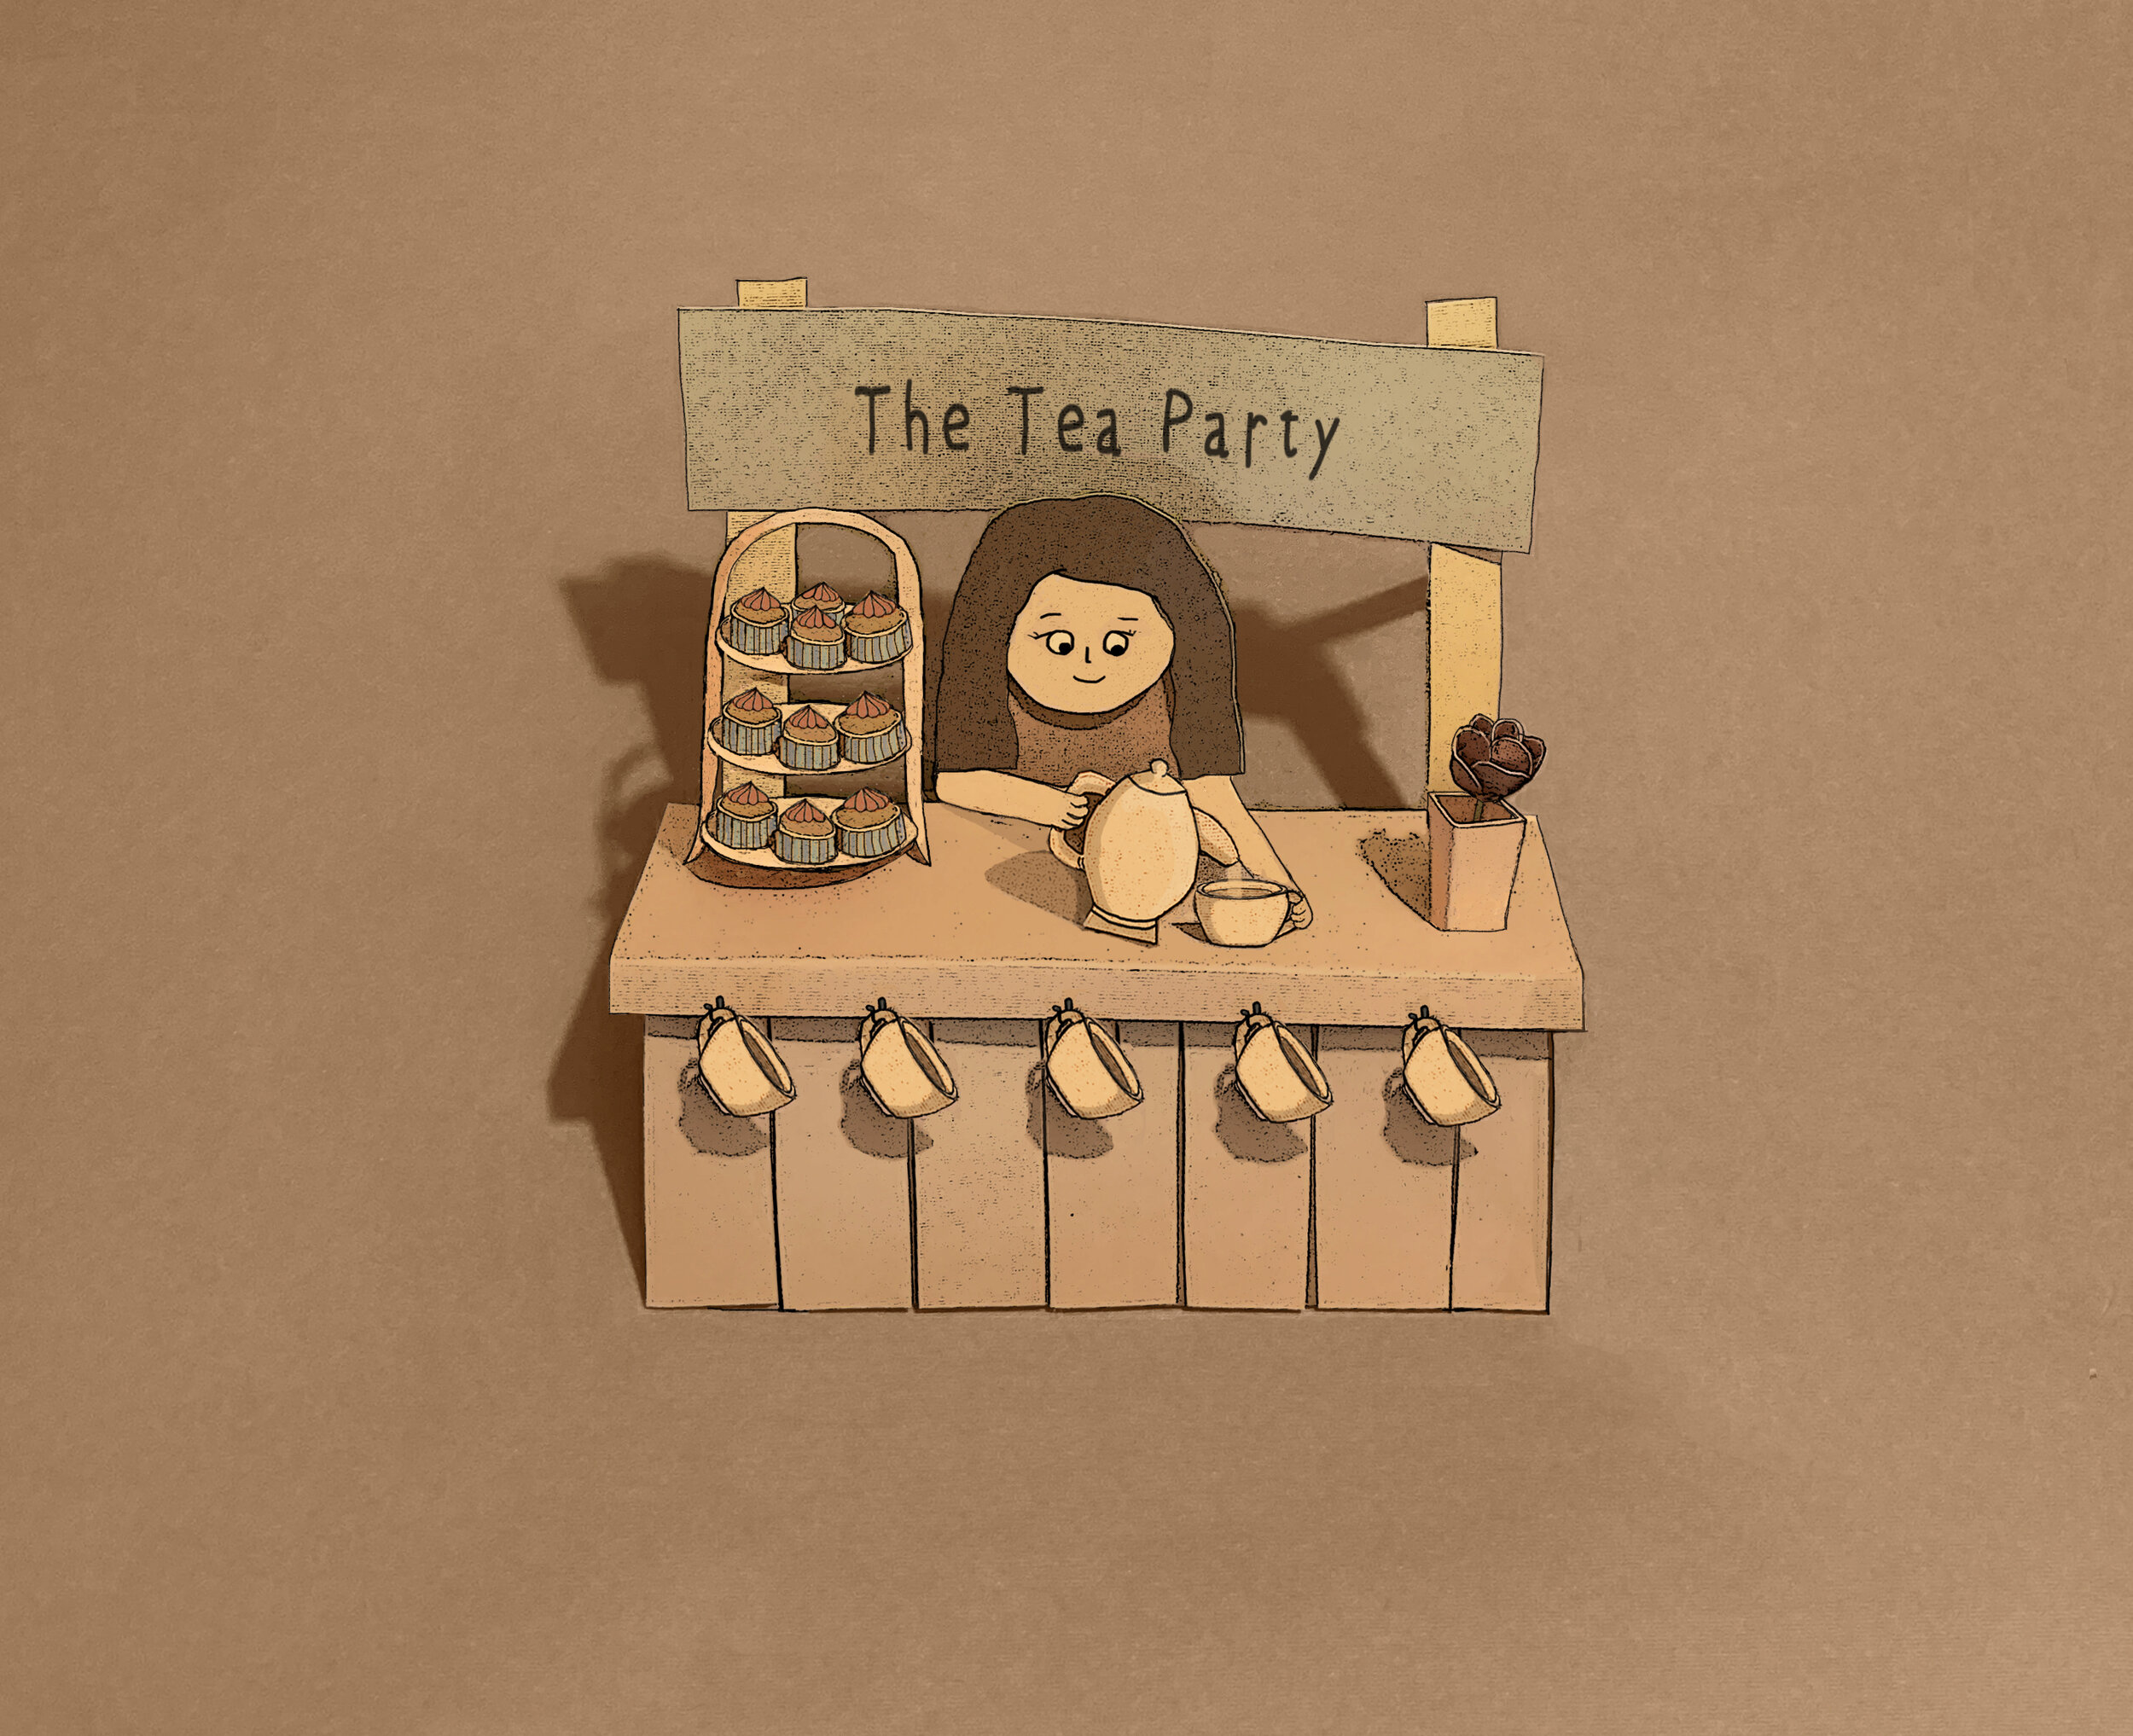 tea party stand edited again sto make bigger background cropped again flat again copy color experiment.jpg